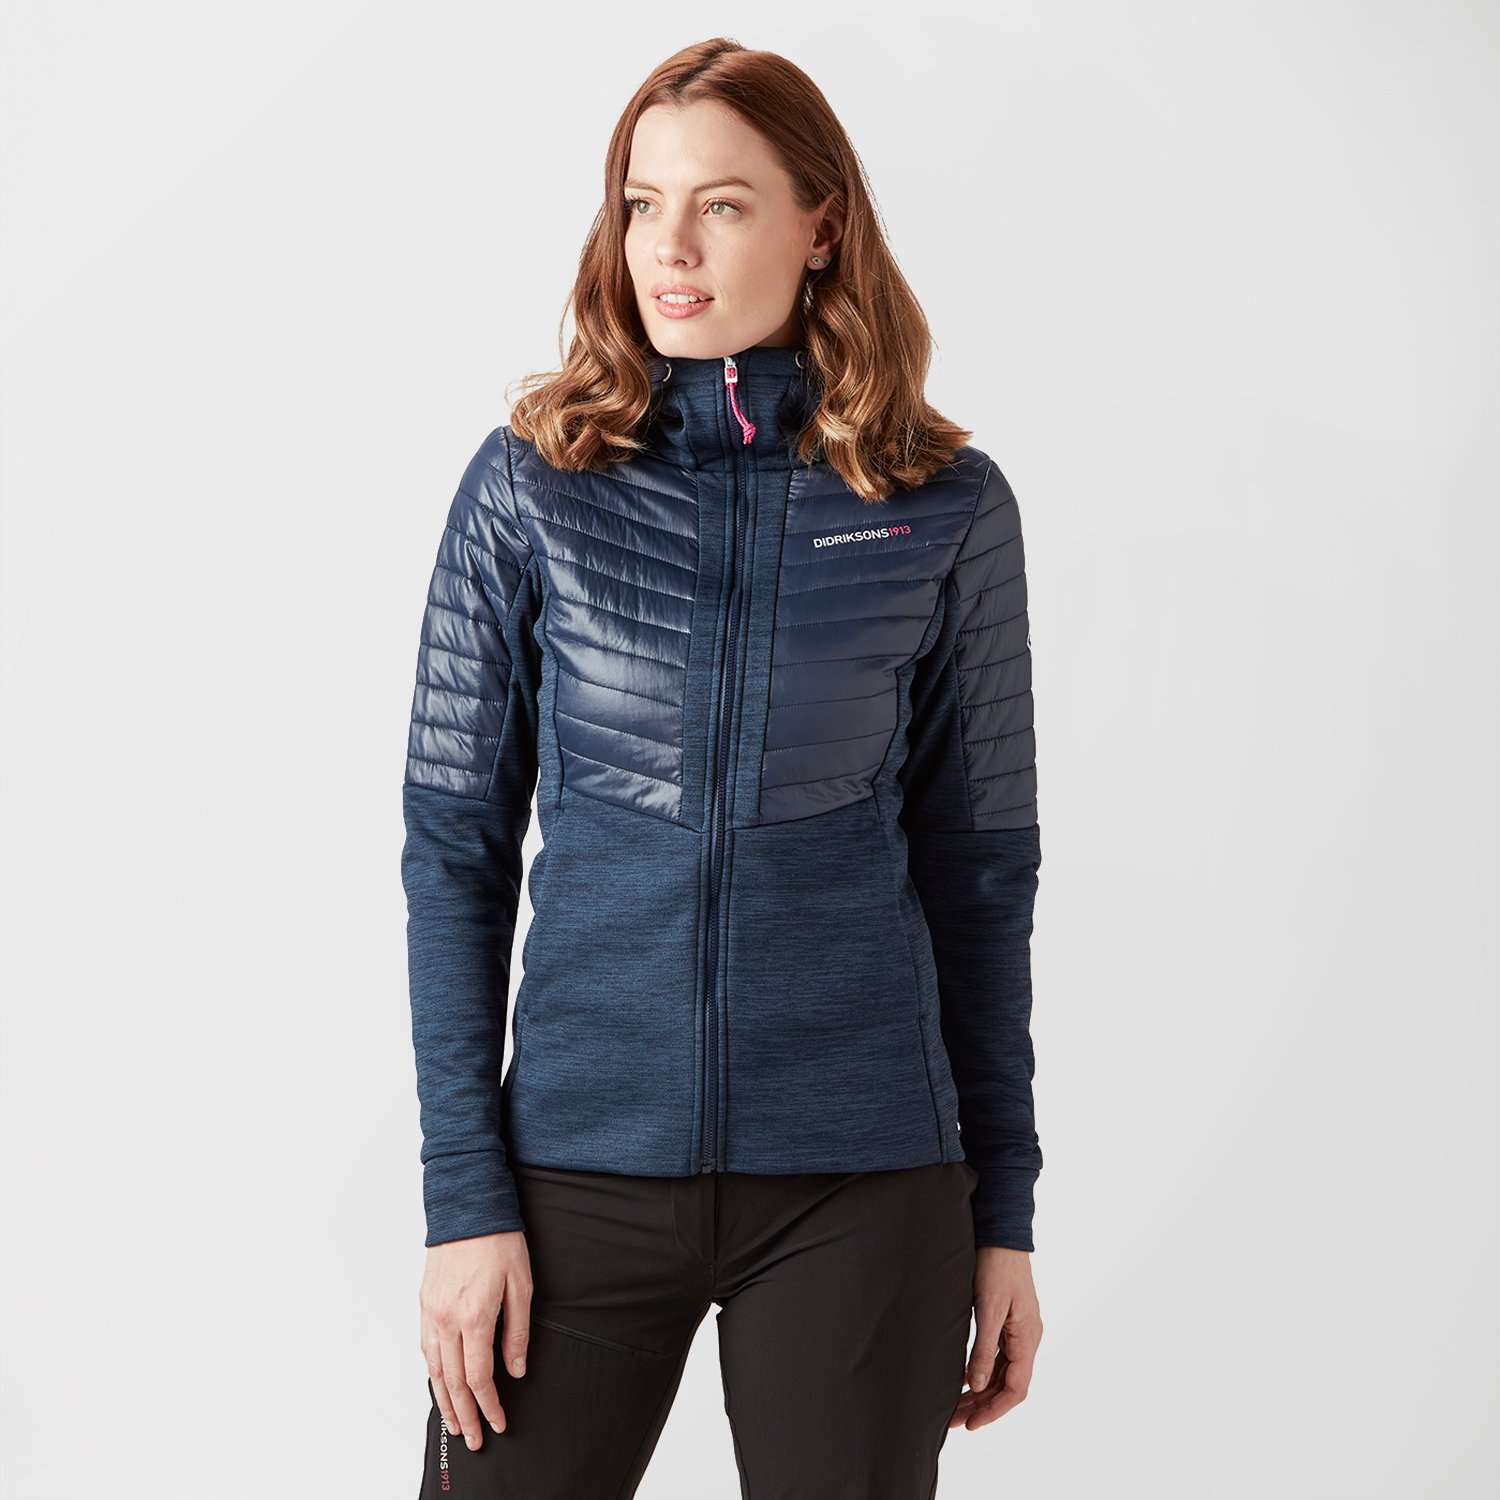 DIDRIKSONS Women's Annema Jacket